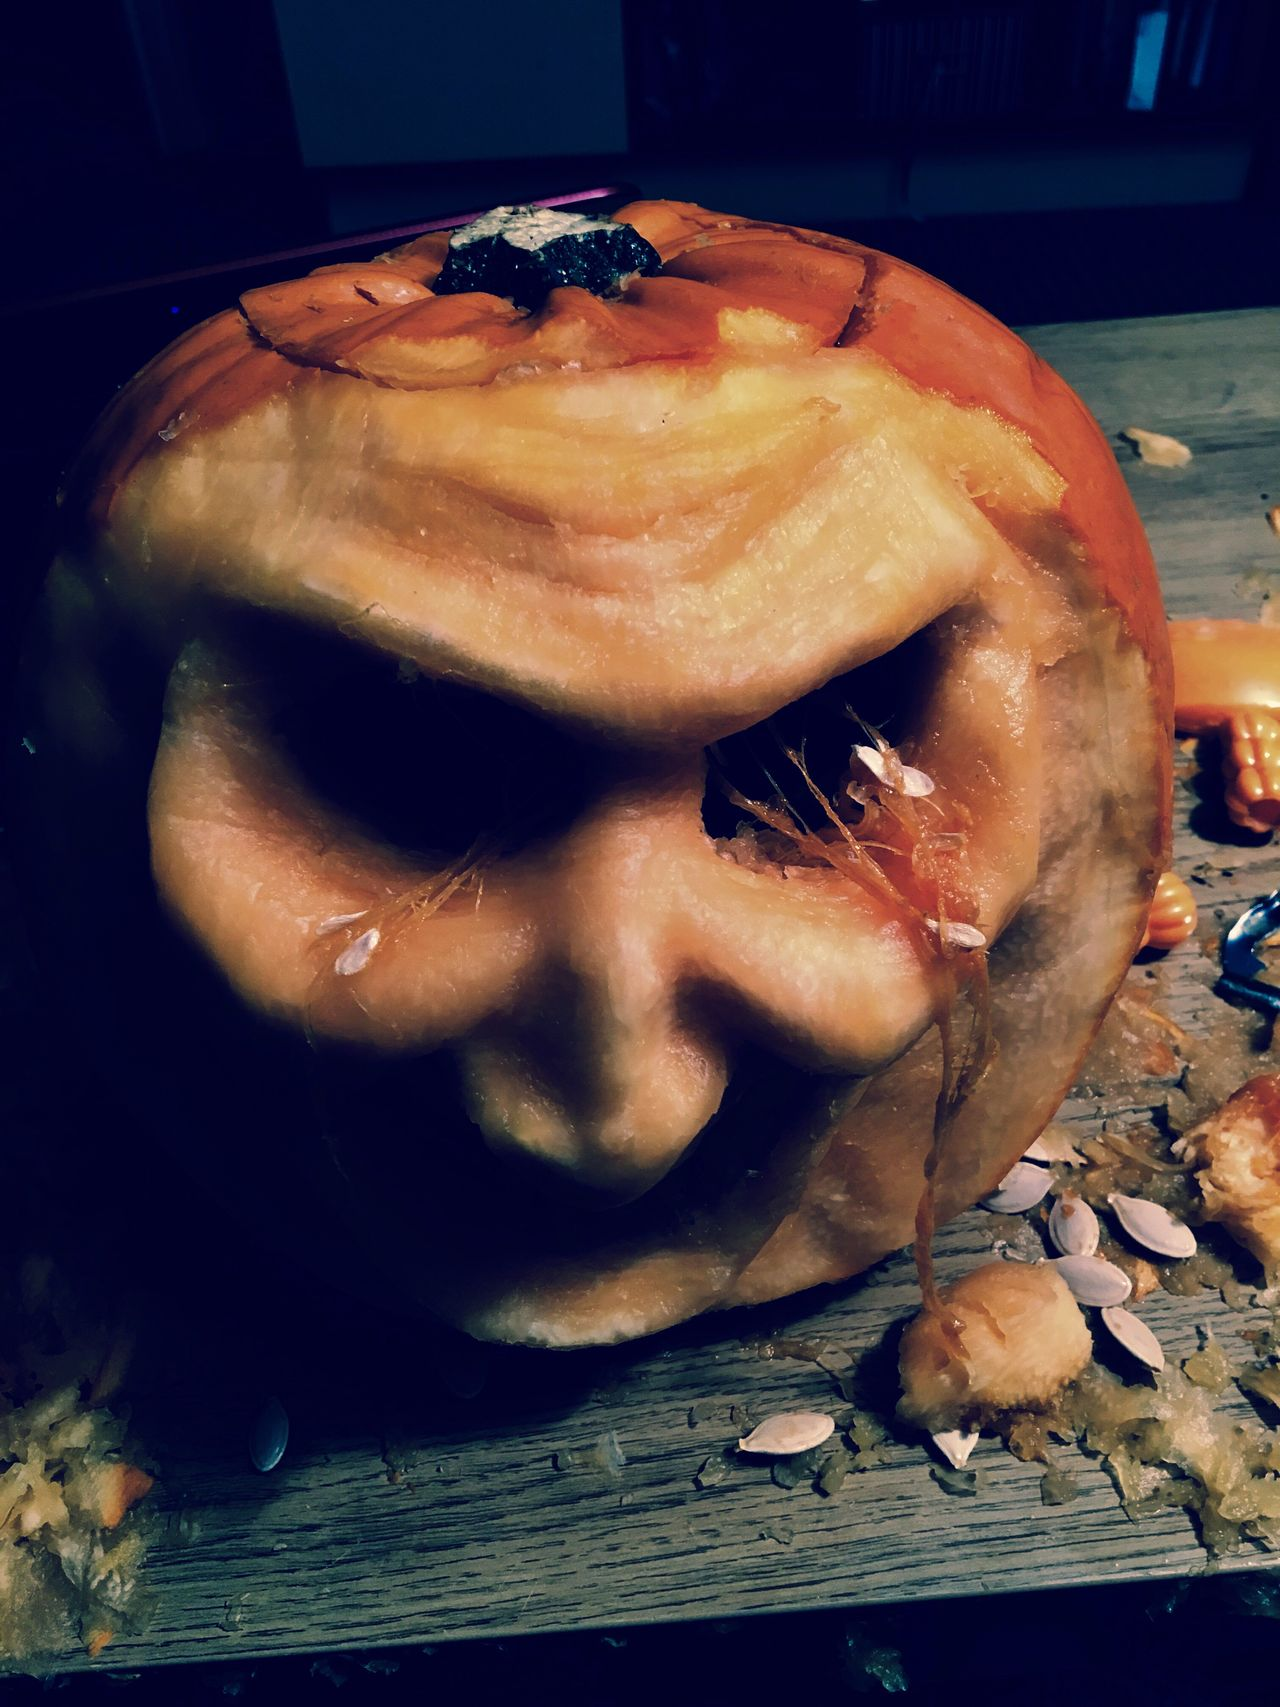 True face of the pumpkin behind all the skin that was pealed off. Halloween Pumpkincarving Trueface Angry Alone Pumpkin Seeds